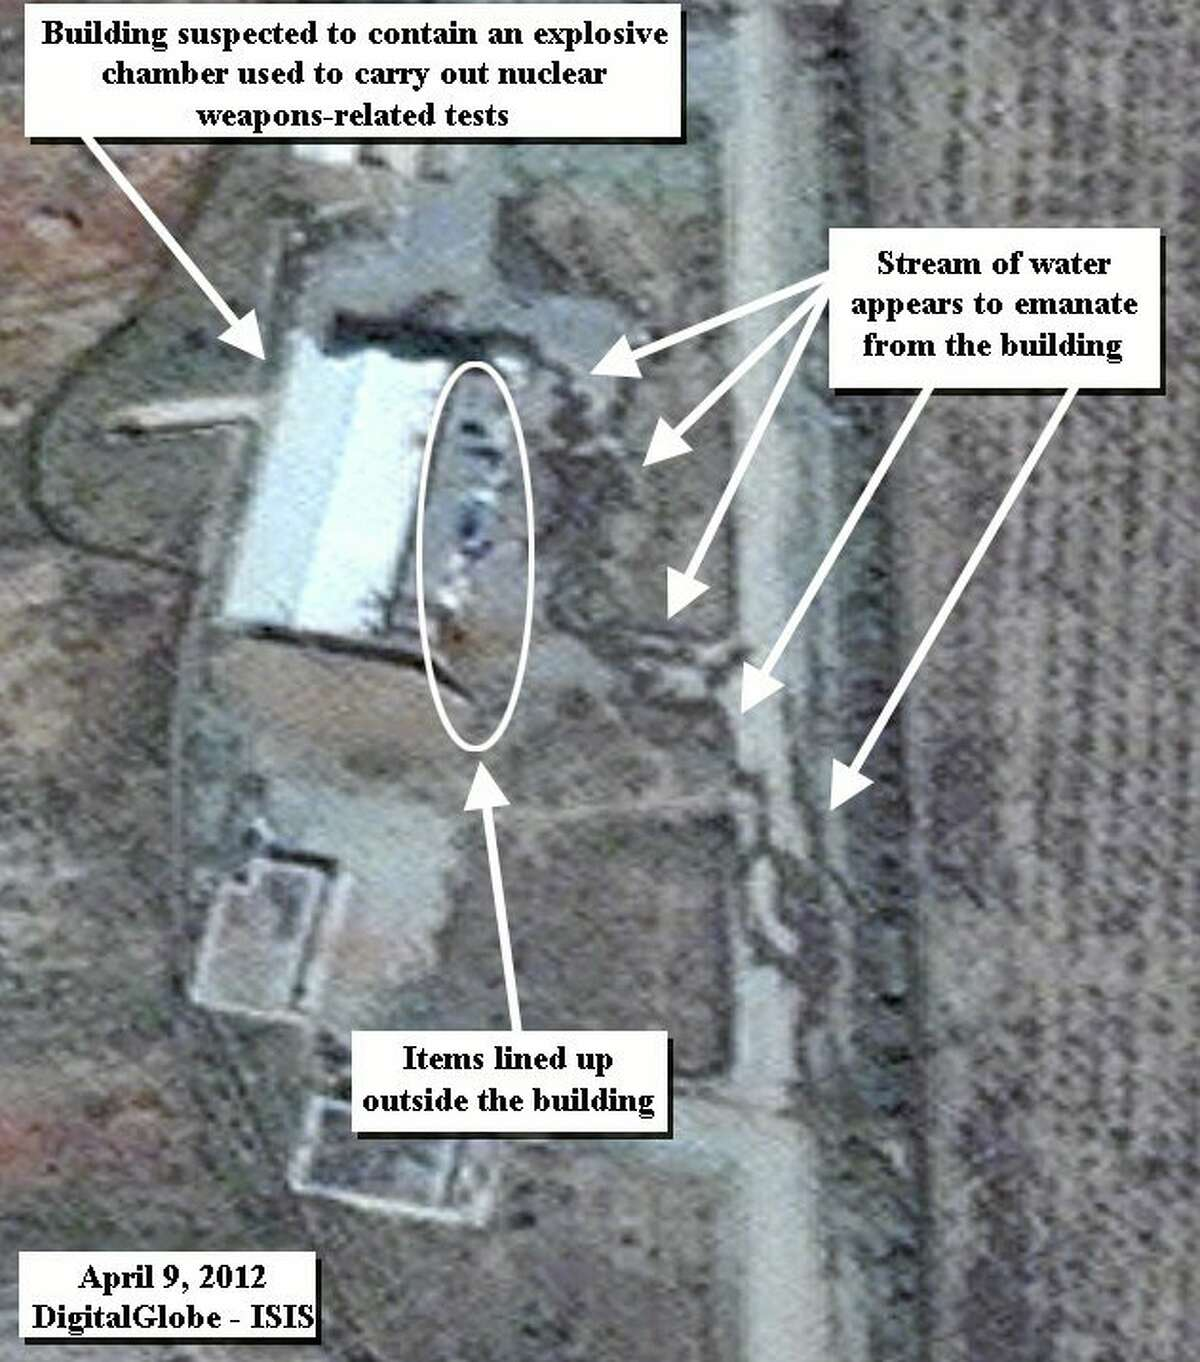 This photo from April 9, 2012, provided by the Institute for Science and International Security, shows activities in a building that is said to contain a chamber for weapons testing in Parchin military complex in Iran. A U.S. institute that tracks Iran's nuclear program said Aug. 22 that recent satellite images reveal significant alterations of a military site, which the United Nations will try to access after suspicions that Tehran may have used it in an attempt to develop nuclear weapons. (AP Photo/ISIS, handout)